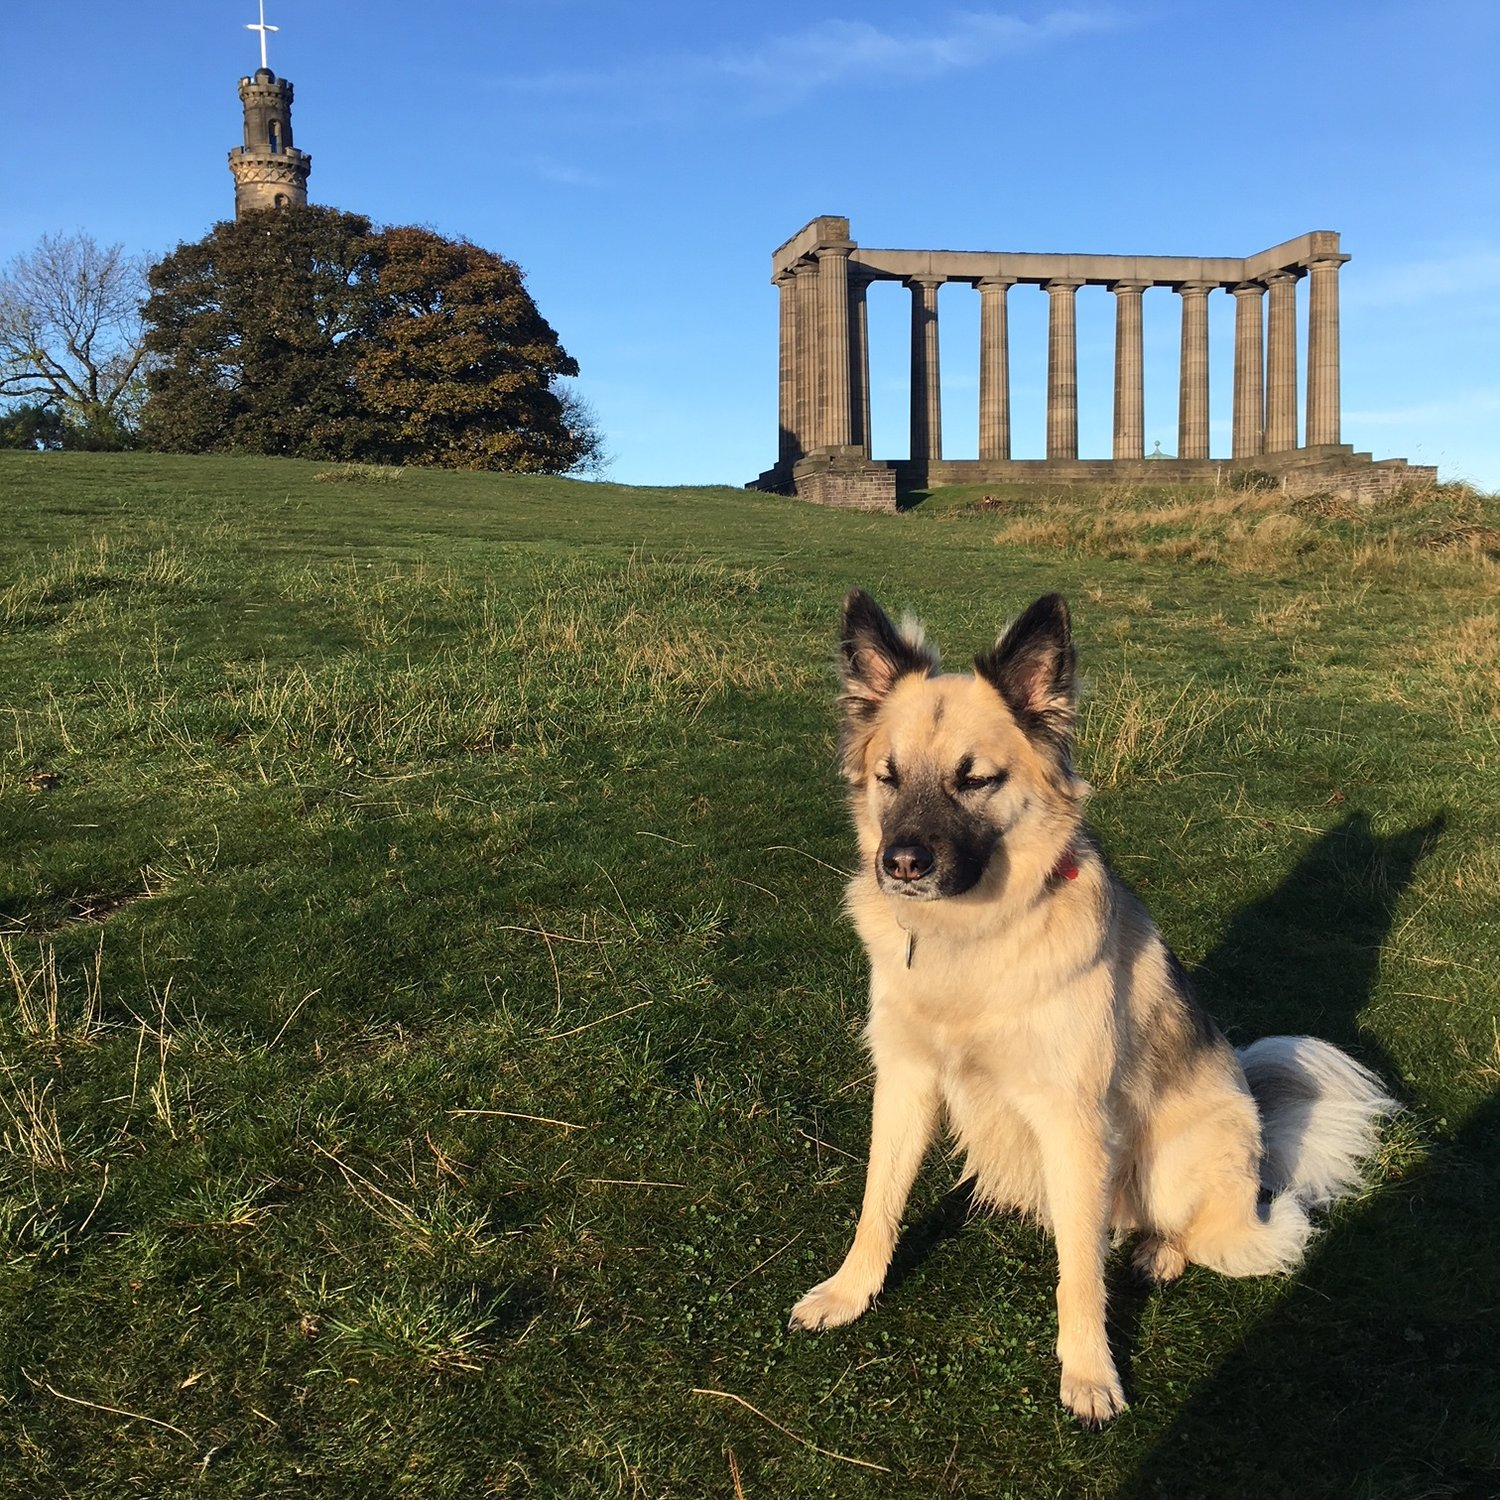 Yes, great view, but the grass is really why I come to Calton Hill